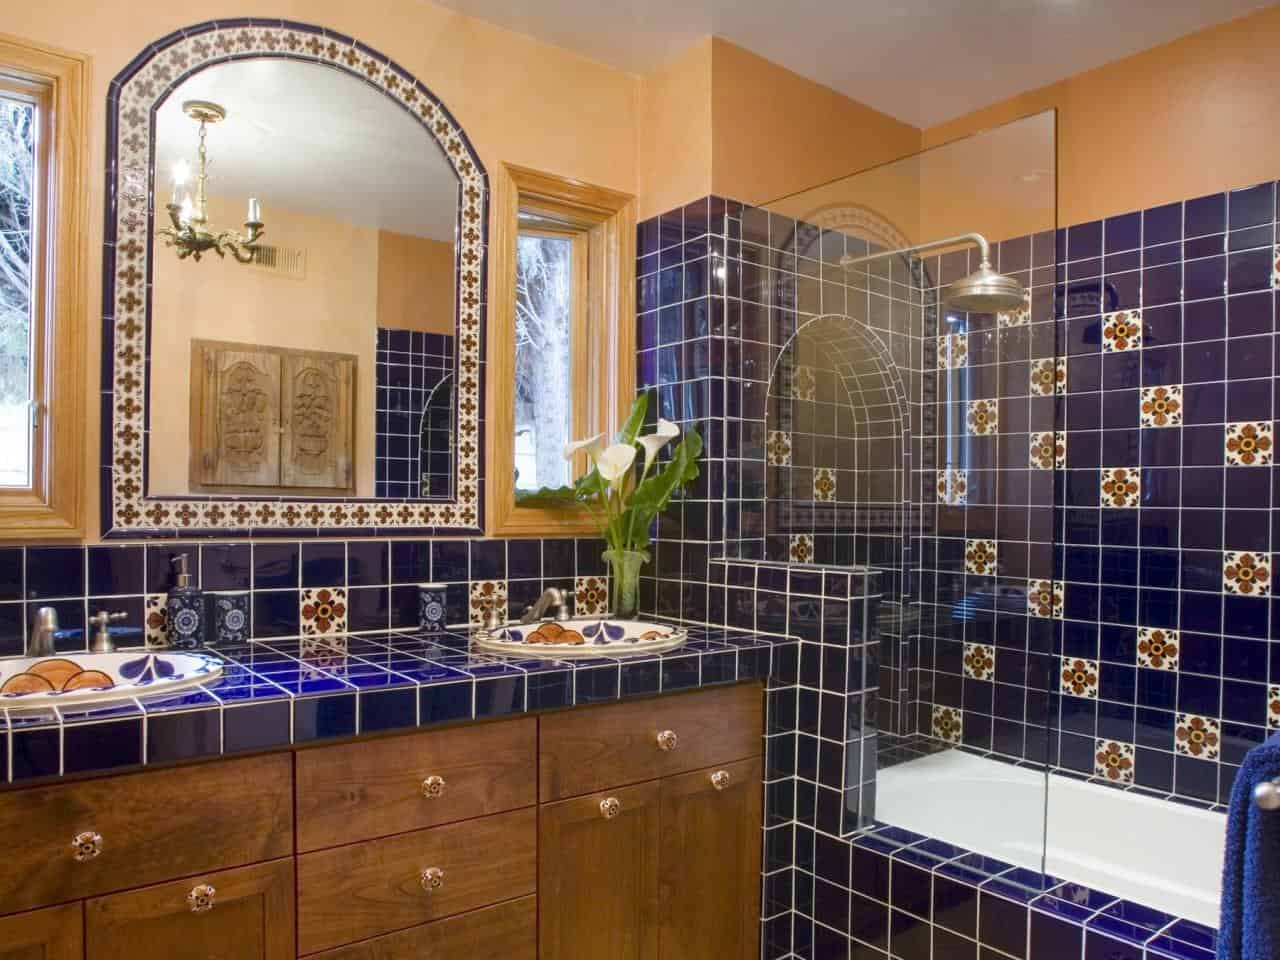 44 top talavera tile design ideas for Mexican themed bathroom ideas